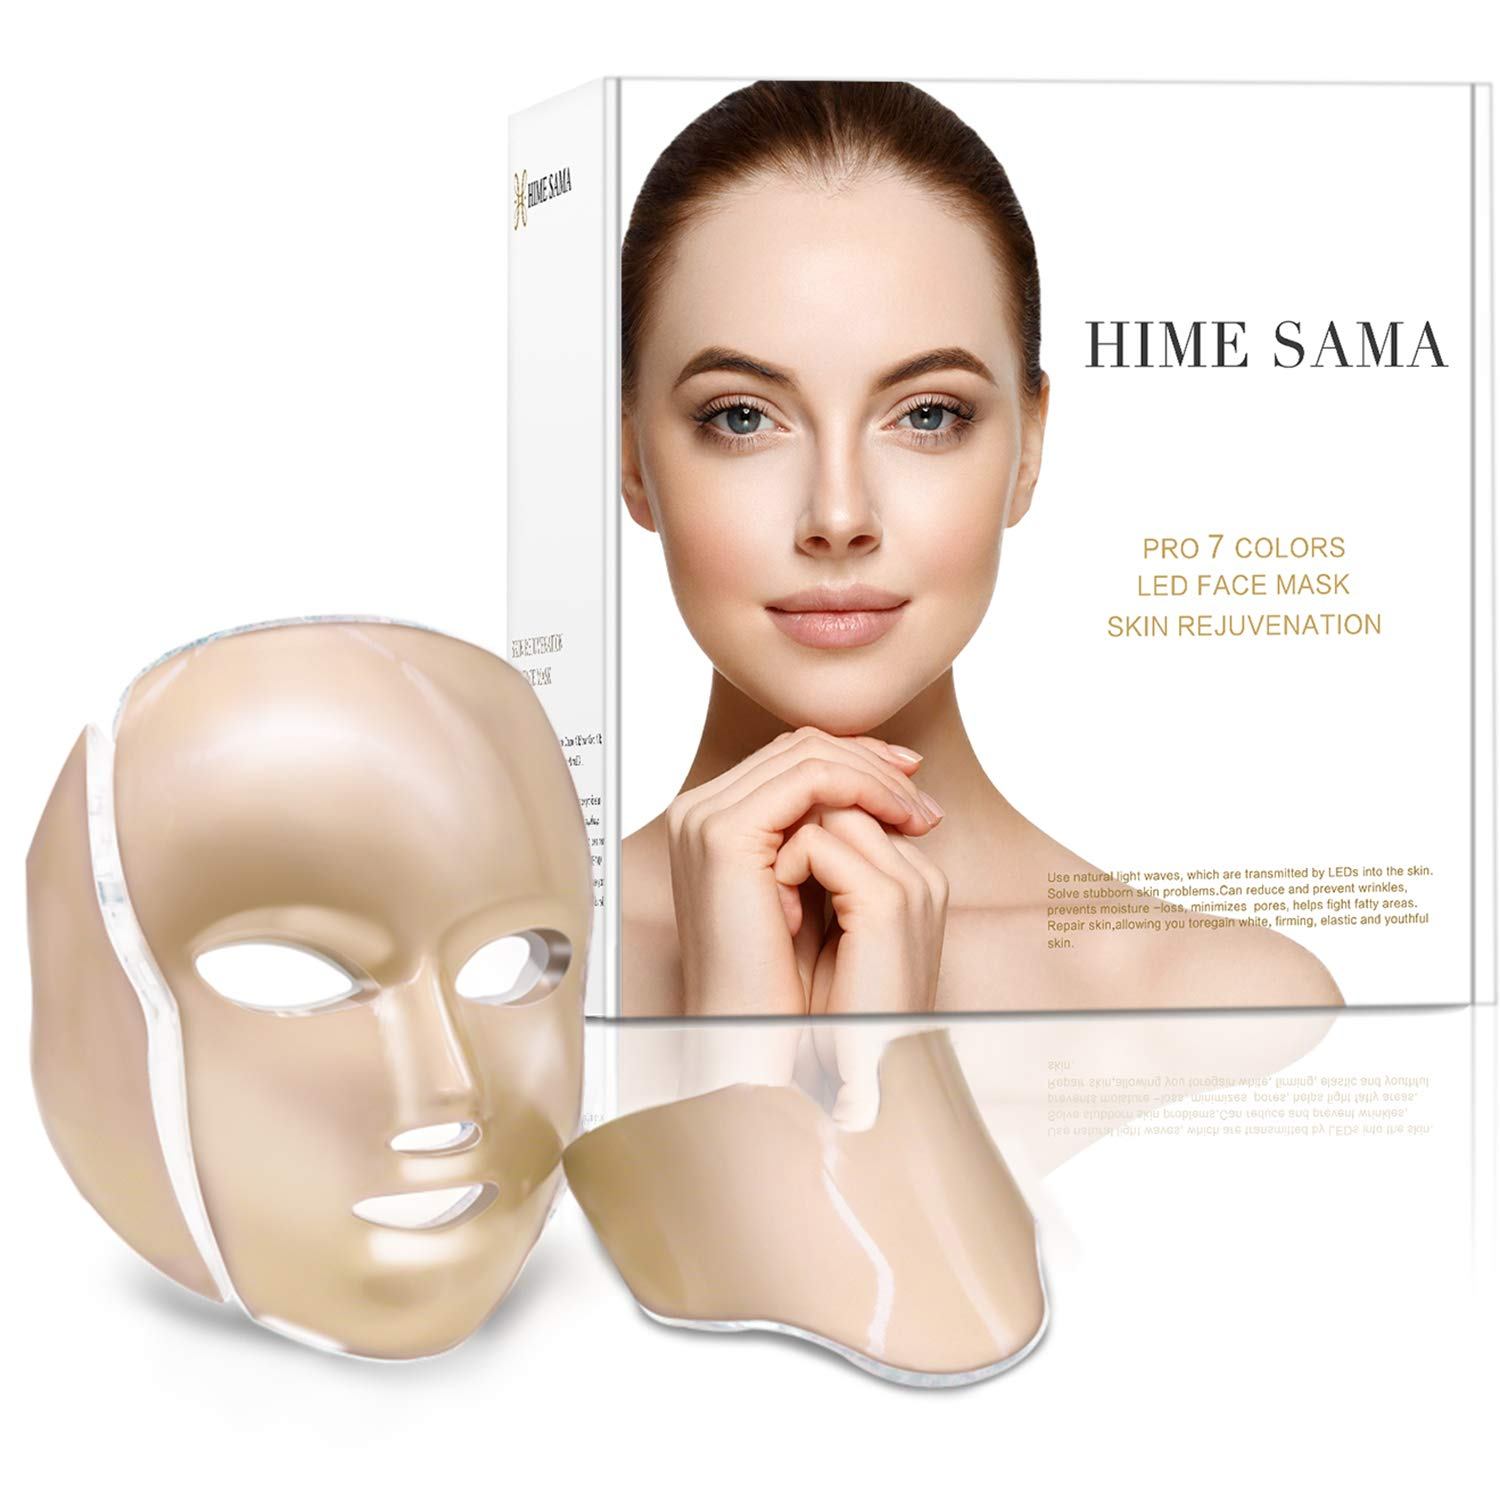 5 Best LED Light Therapy Devices - Hime Sama